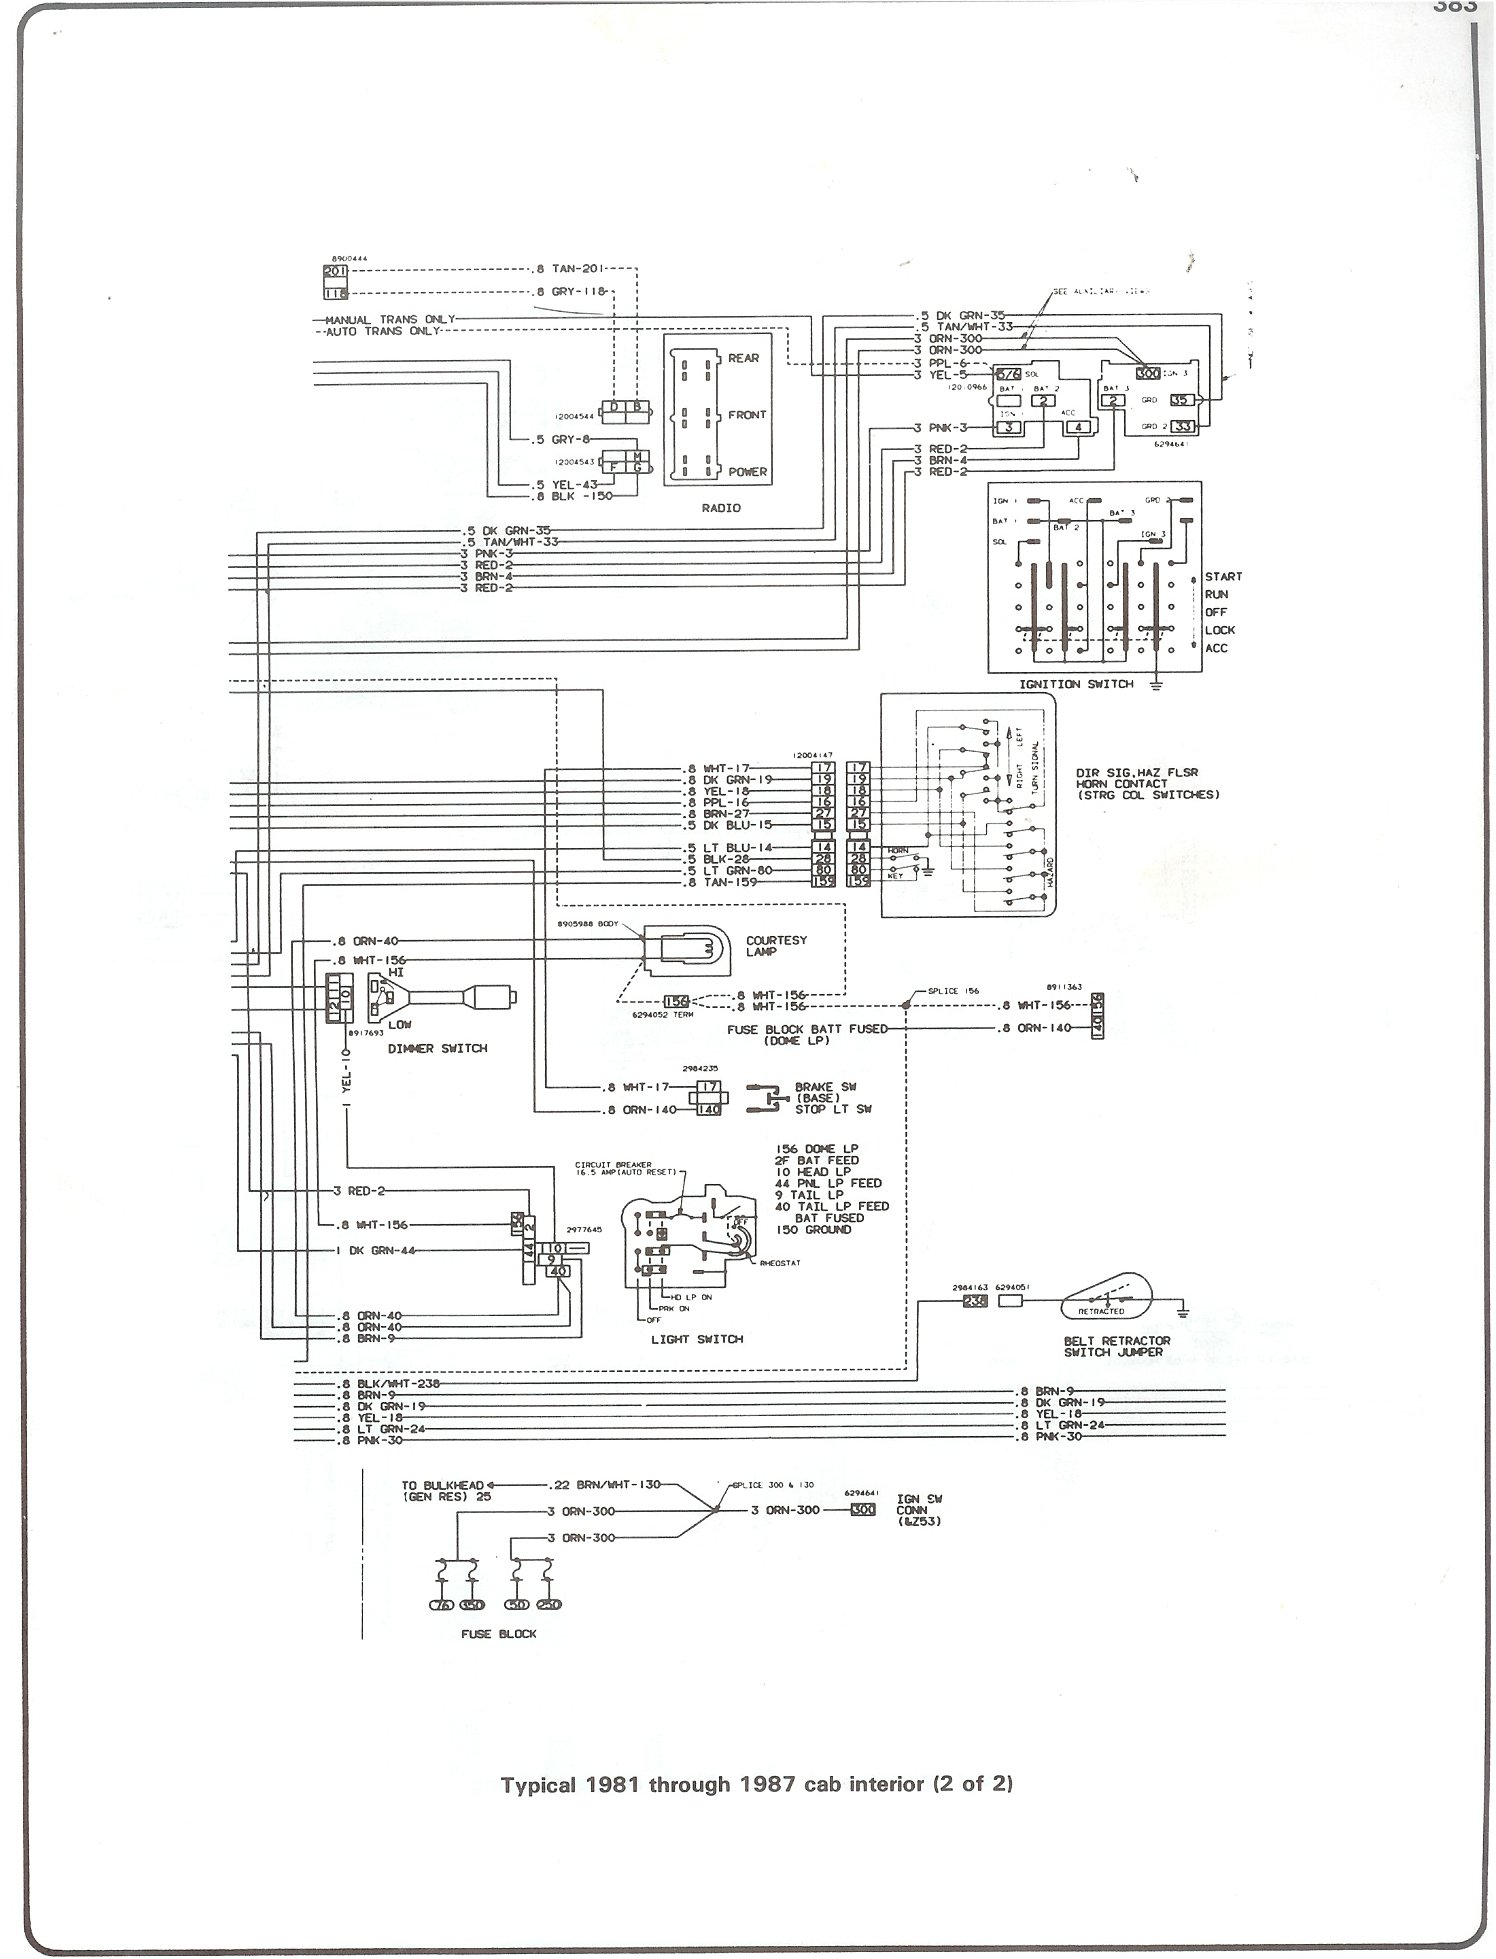 81 87_cab_inter_pg2 complete 73 87 wiring diagrams isuzu box truck wiring diagram at suagrazia.org